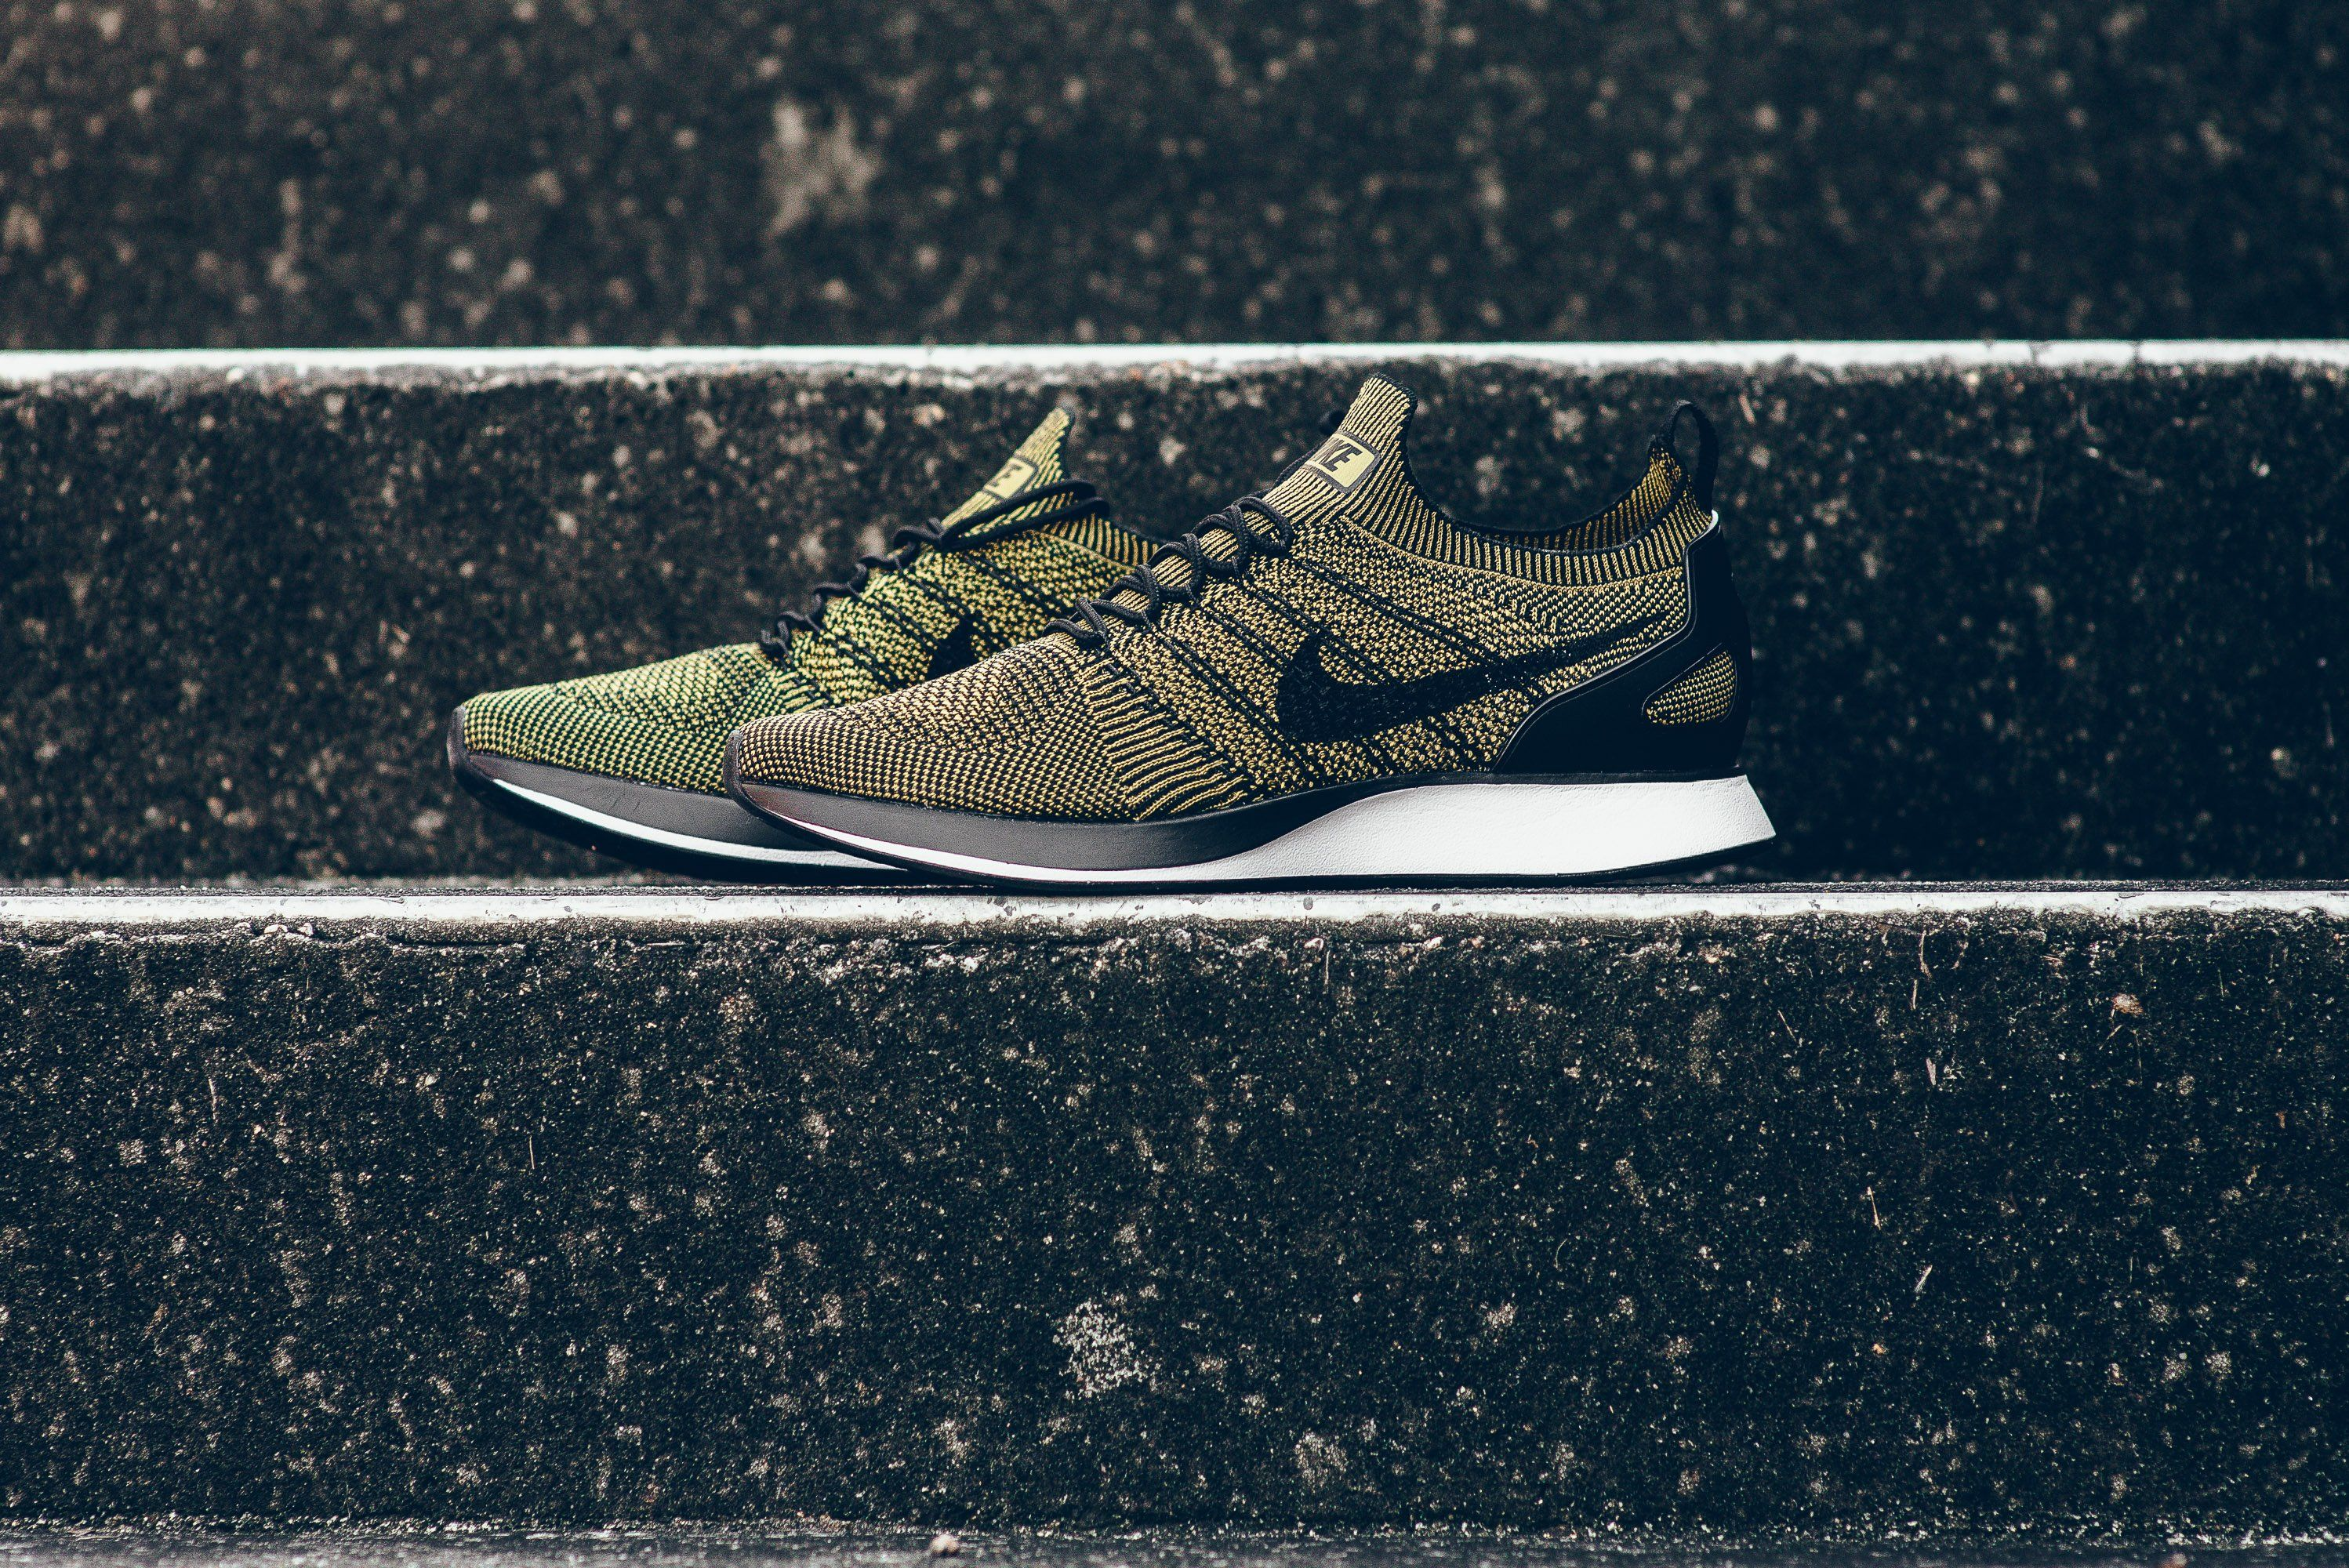 f53b1f51cc4e08 A New Olive Colorway Of The Nike Air Zoom Mariah Flyknit Racer ...